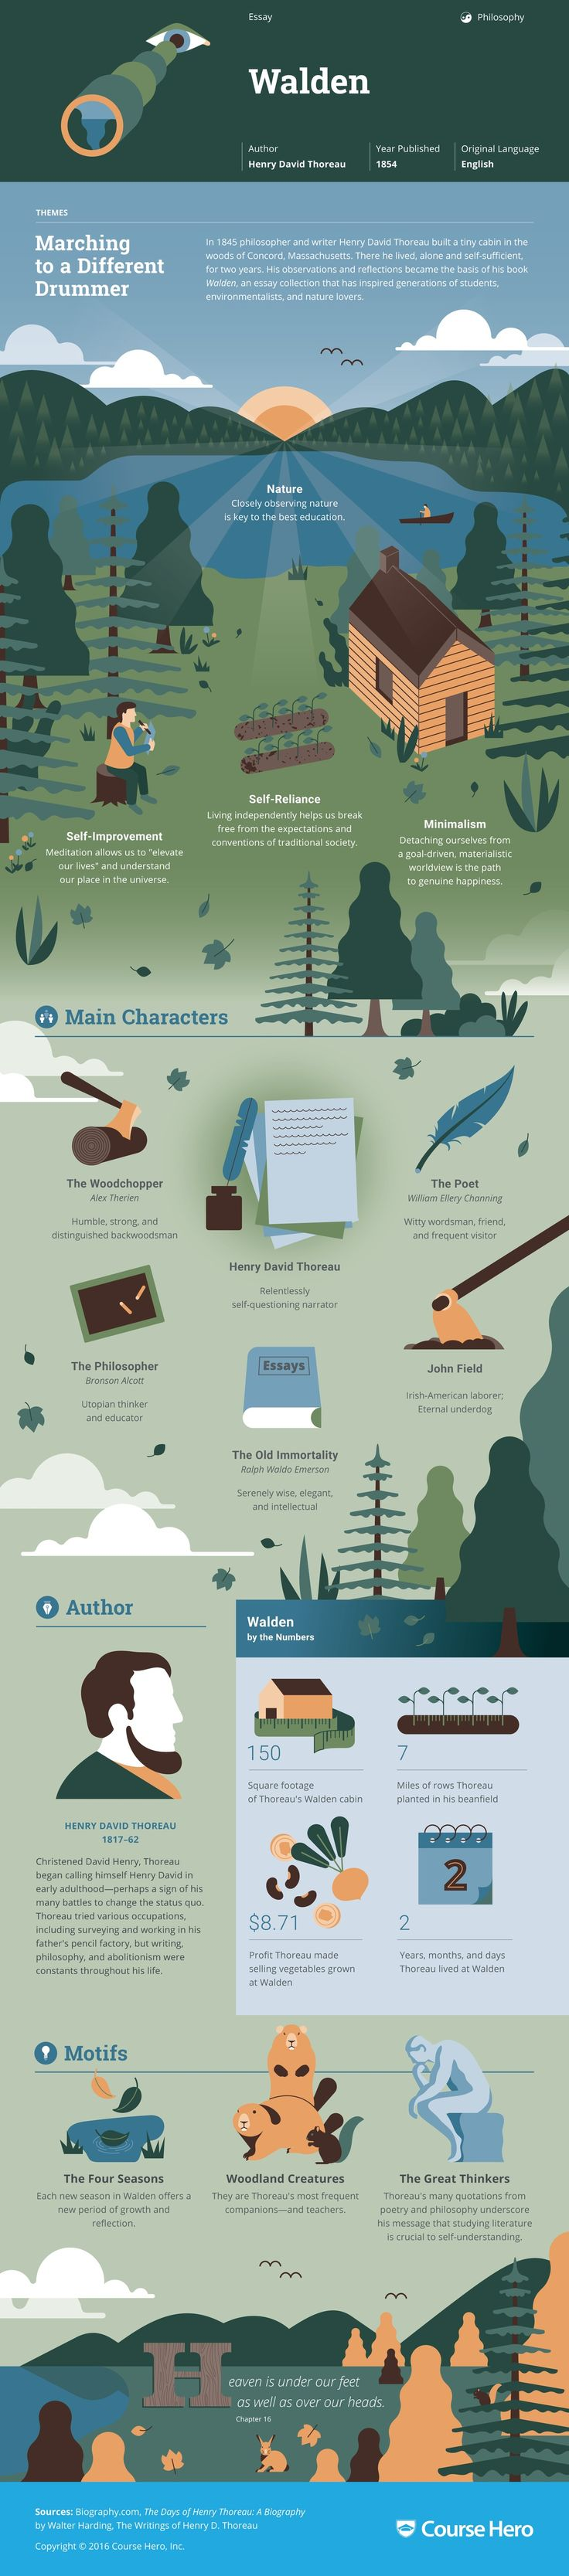 best ideas about henry david thoreau walden walden infographic course hero